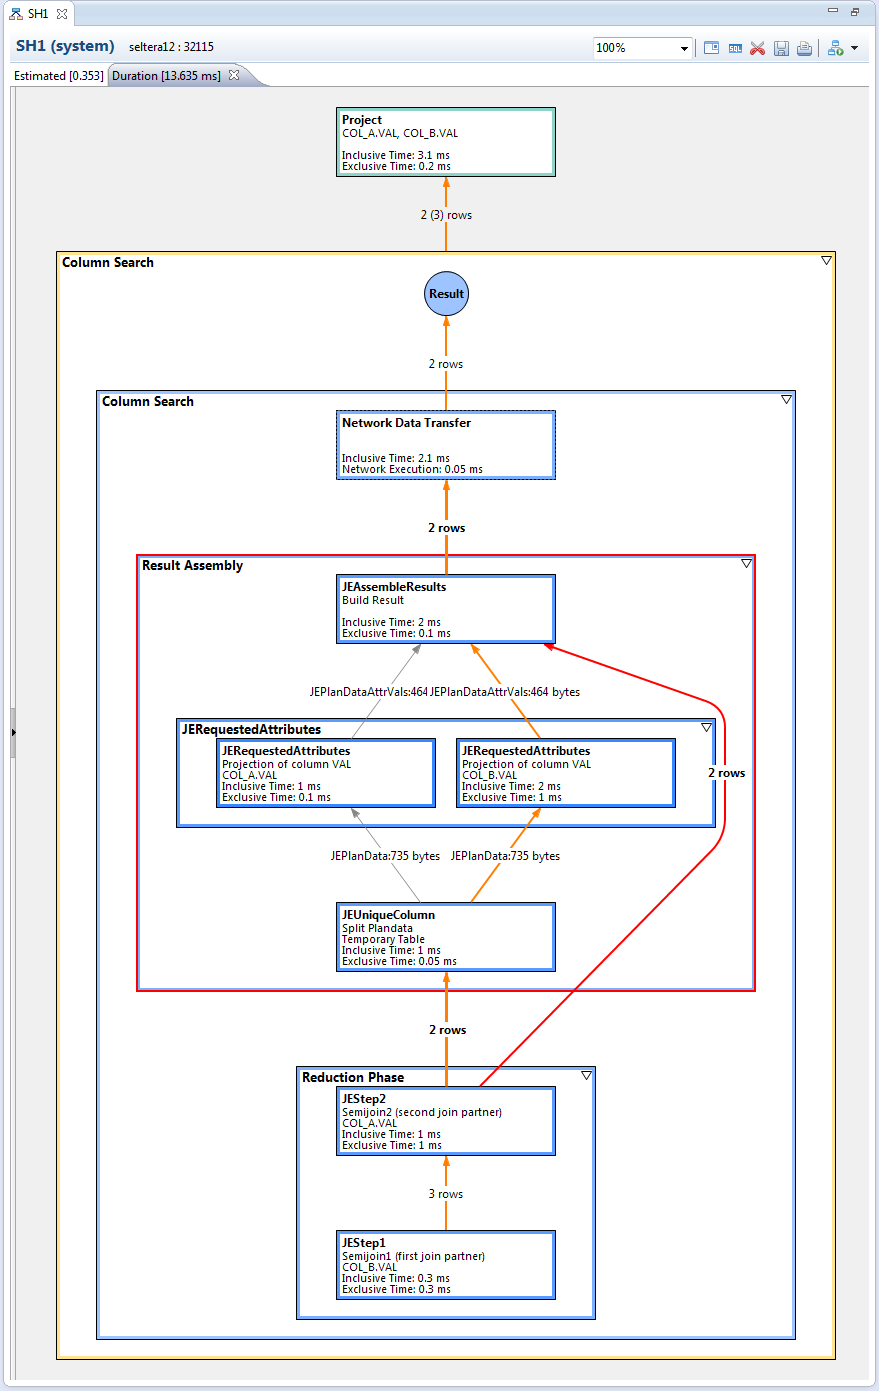 Sap Infrastructure Integration Experiences And Thoughts Hana 1 Block Diagram Also The Tools On Like Plan Visualizer To Analyze Where Time Is Spent When A Specific Statement Executed Are Mind Blowing Compared